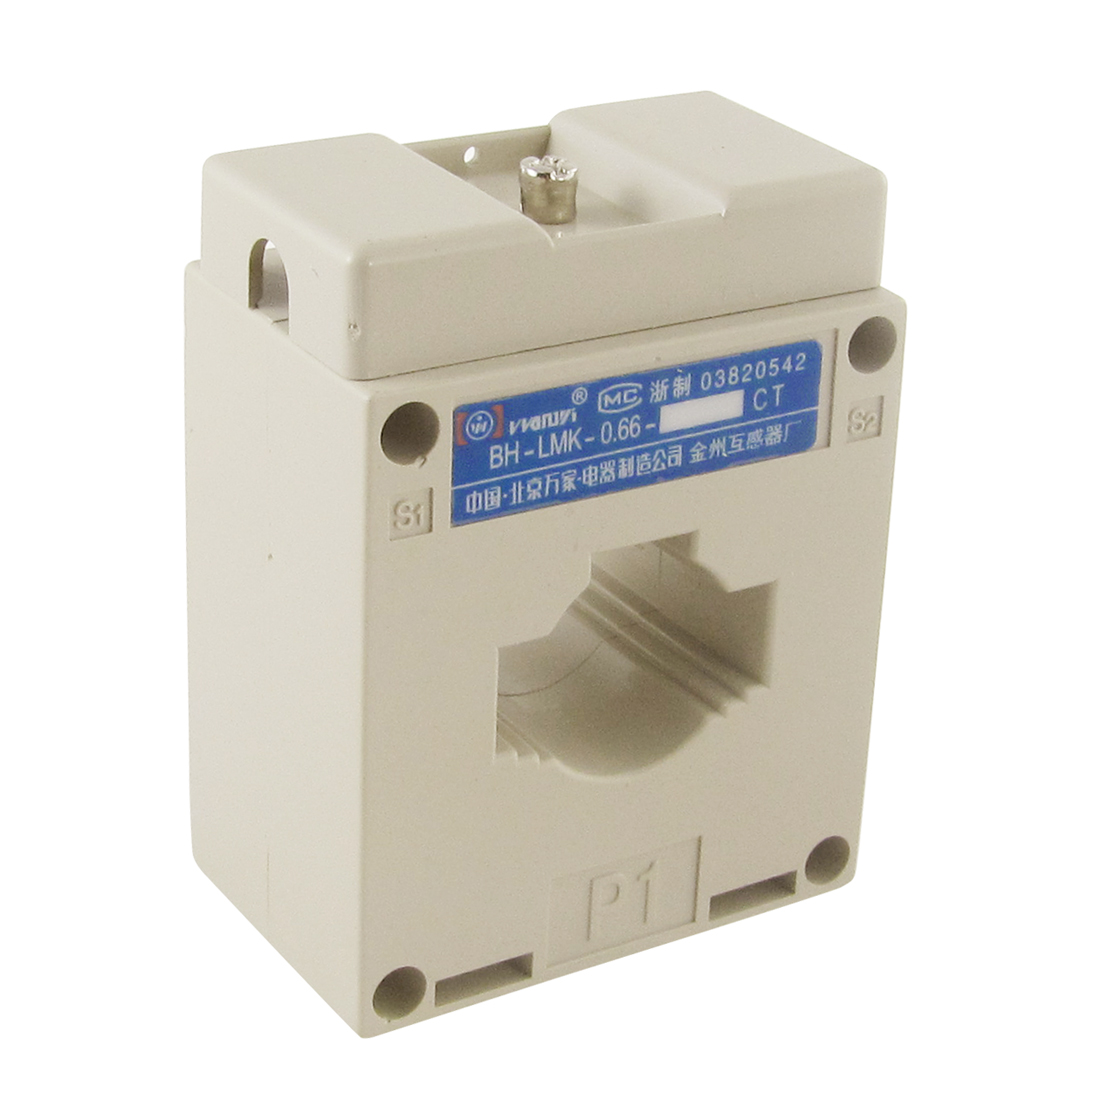 BH-0.66 0.5 Accuracy Class 1T 100/5 CT Current Transformer